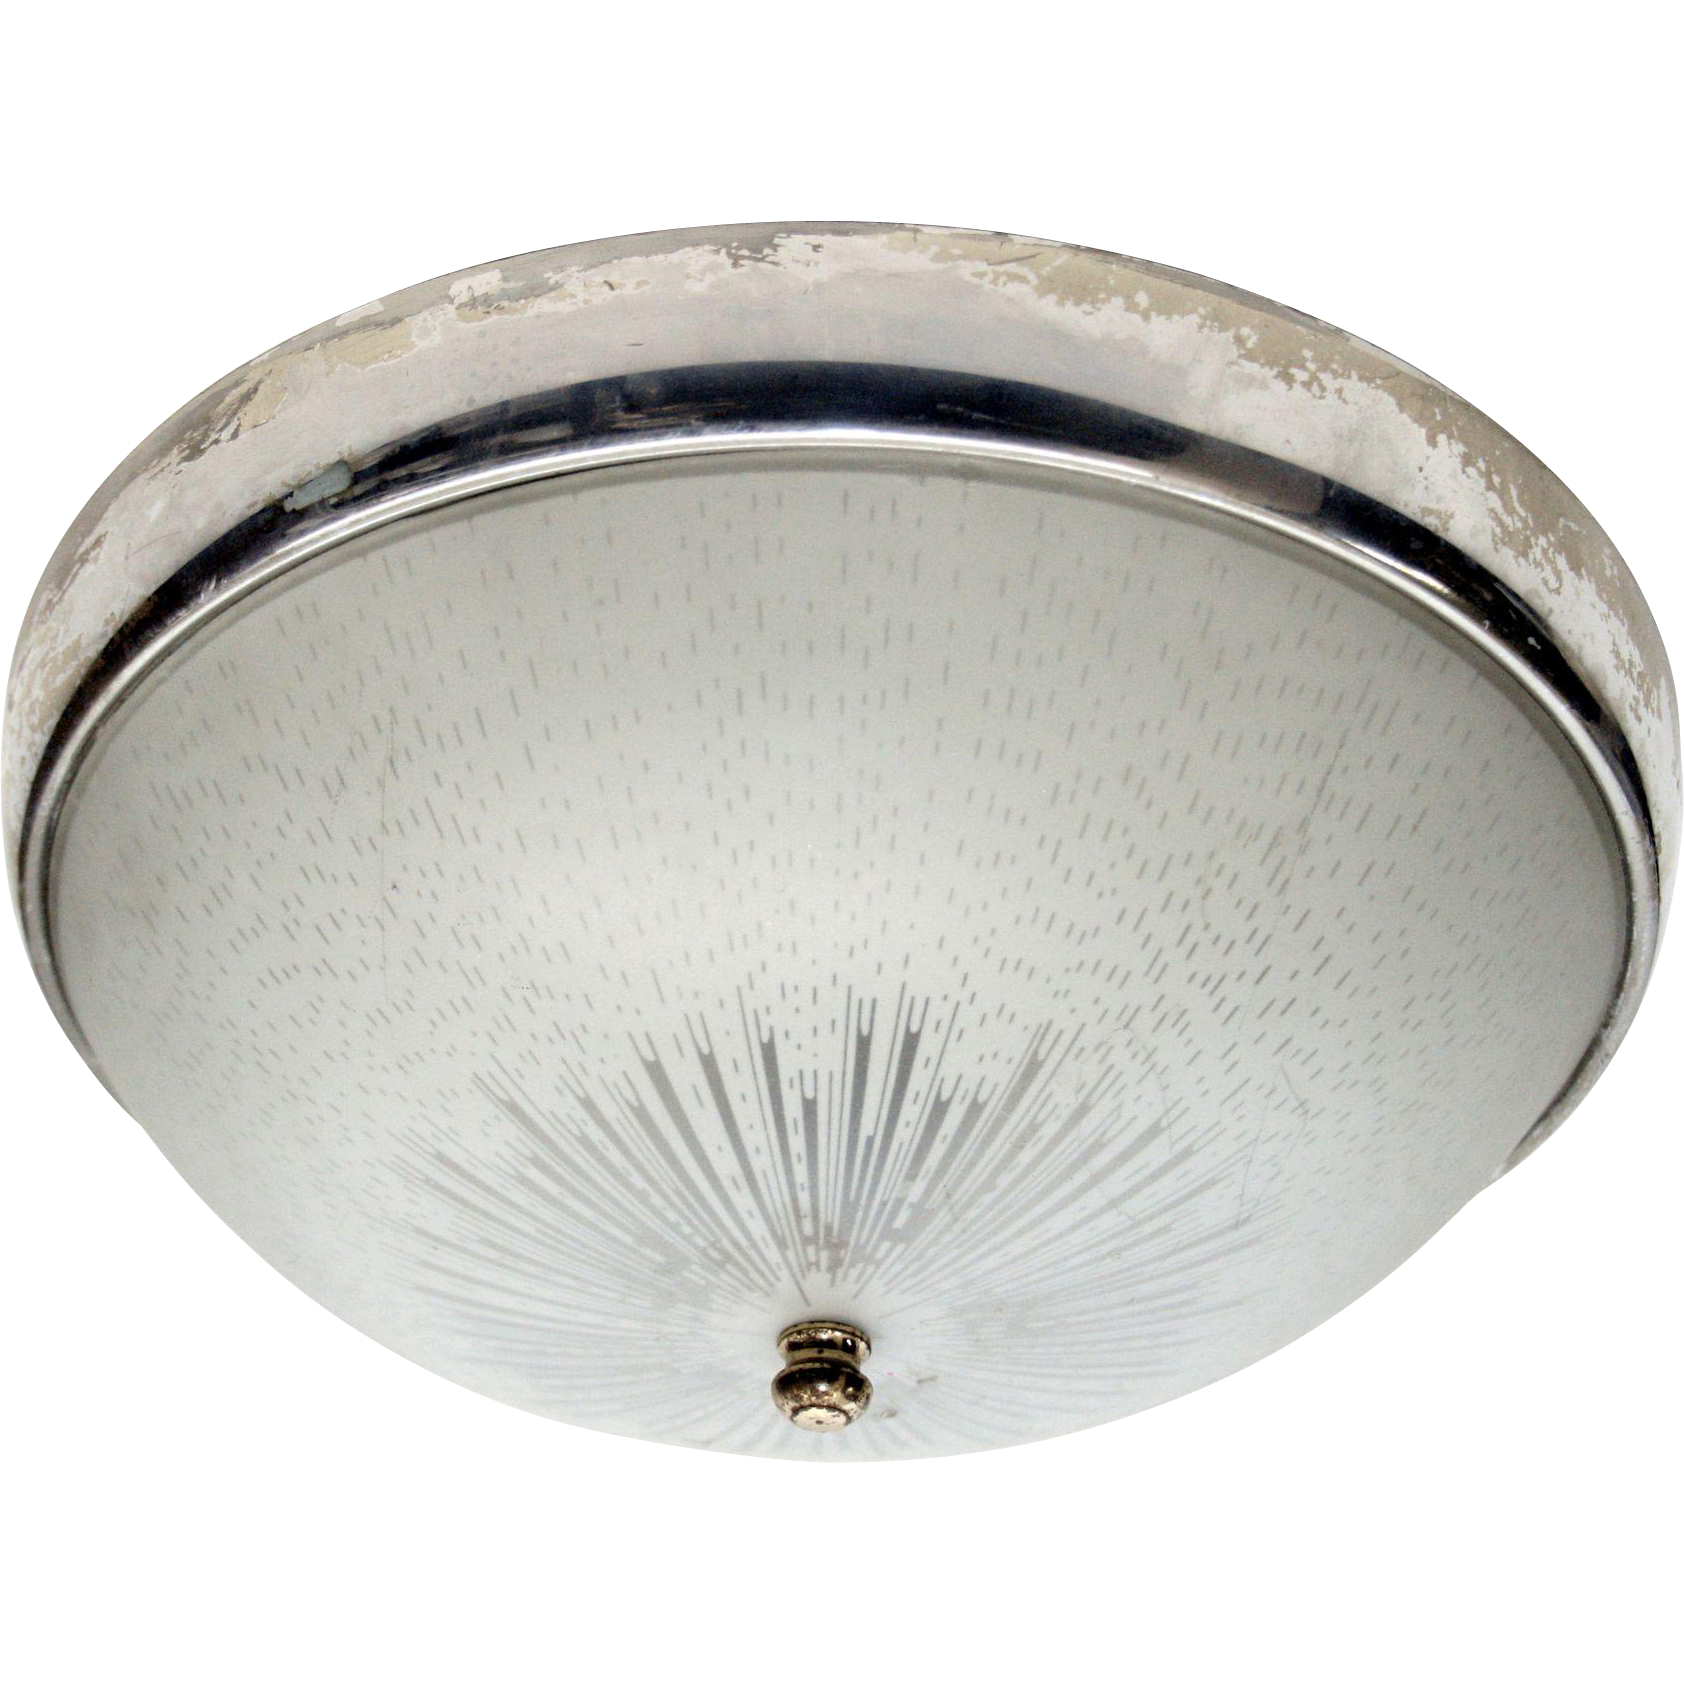 1950s Original flush mount light with nickel trim